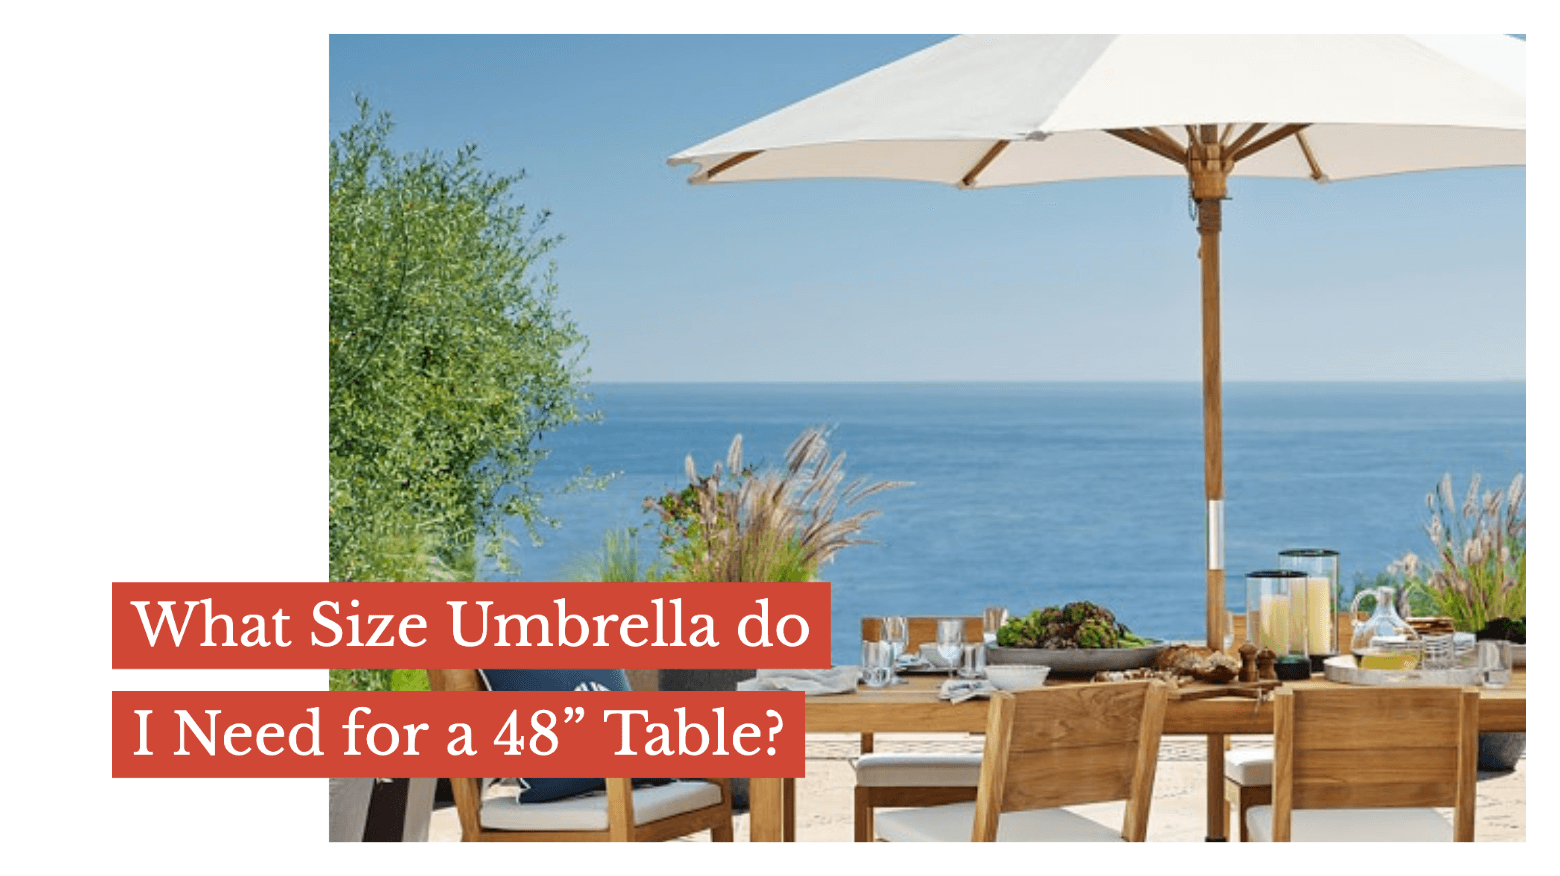 "What Size Umbrella do I need for a 48"" Table?"